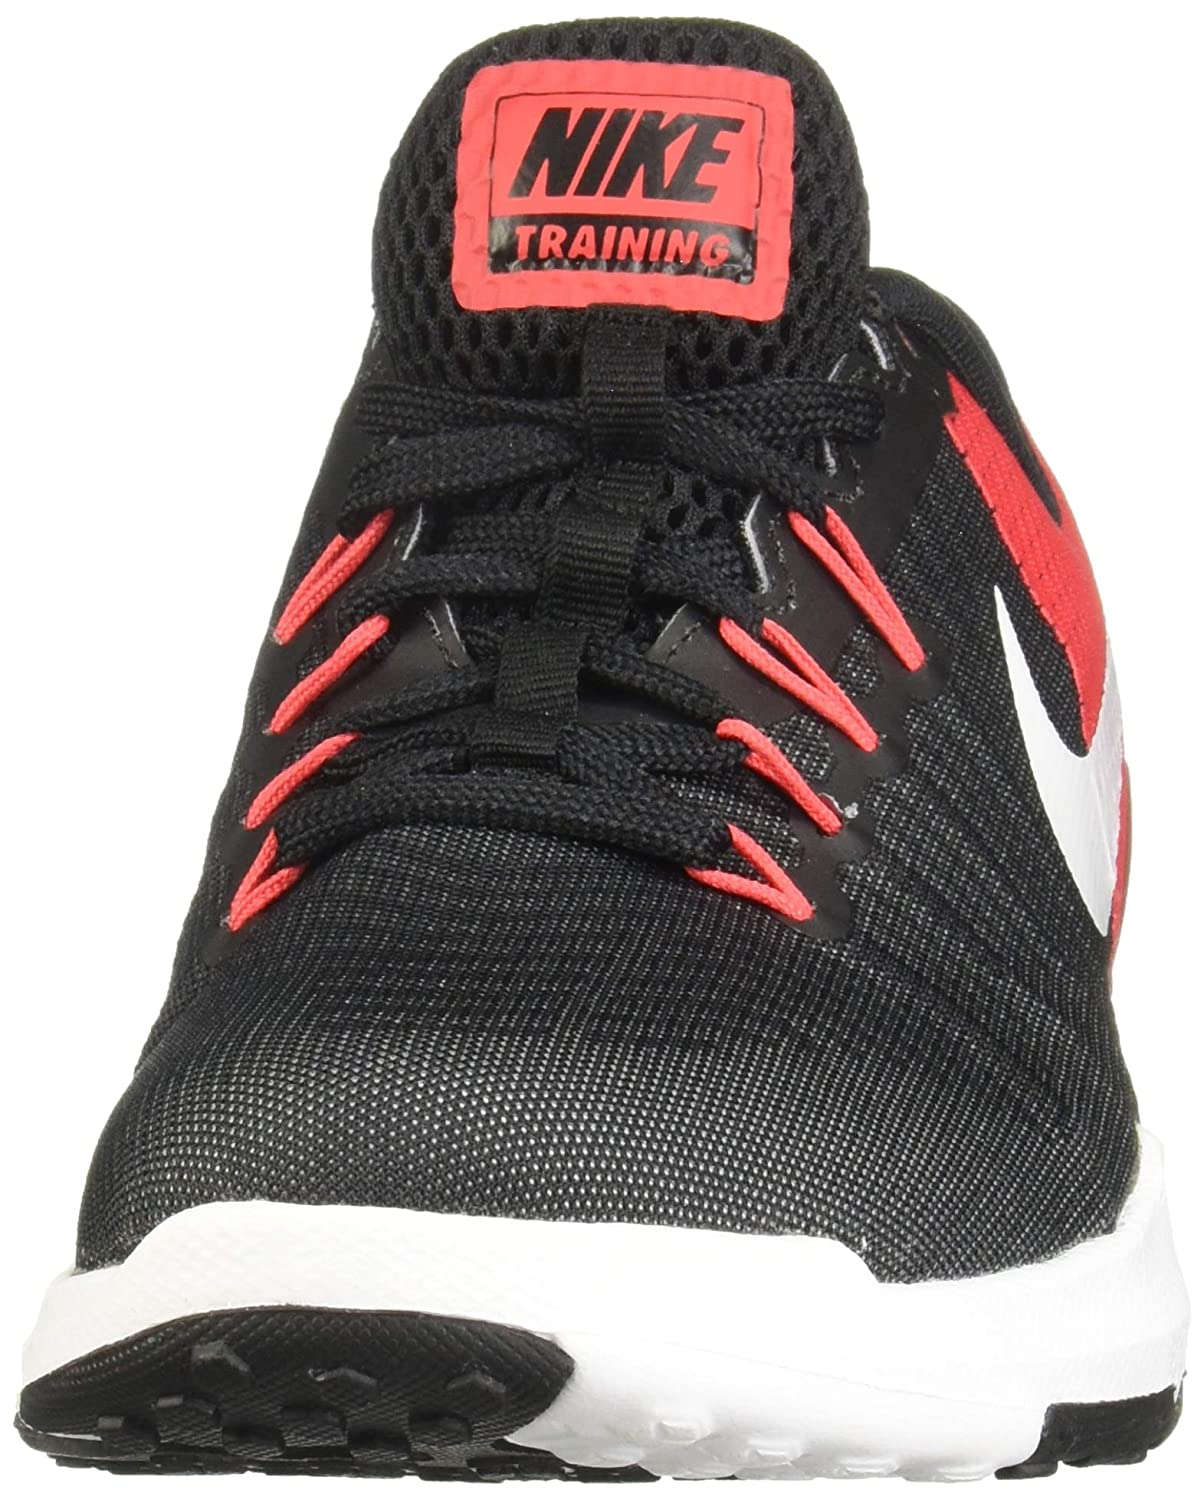 8f6f9f94630 Amazon.com | NIKE Zoom Train Action Men's Running Shoes 852438 002 |  Basketball